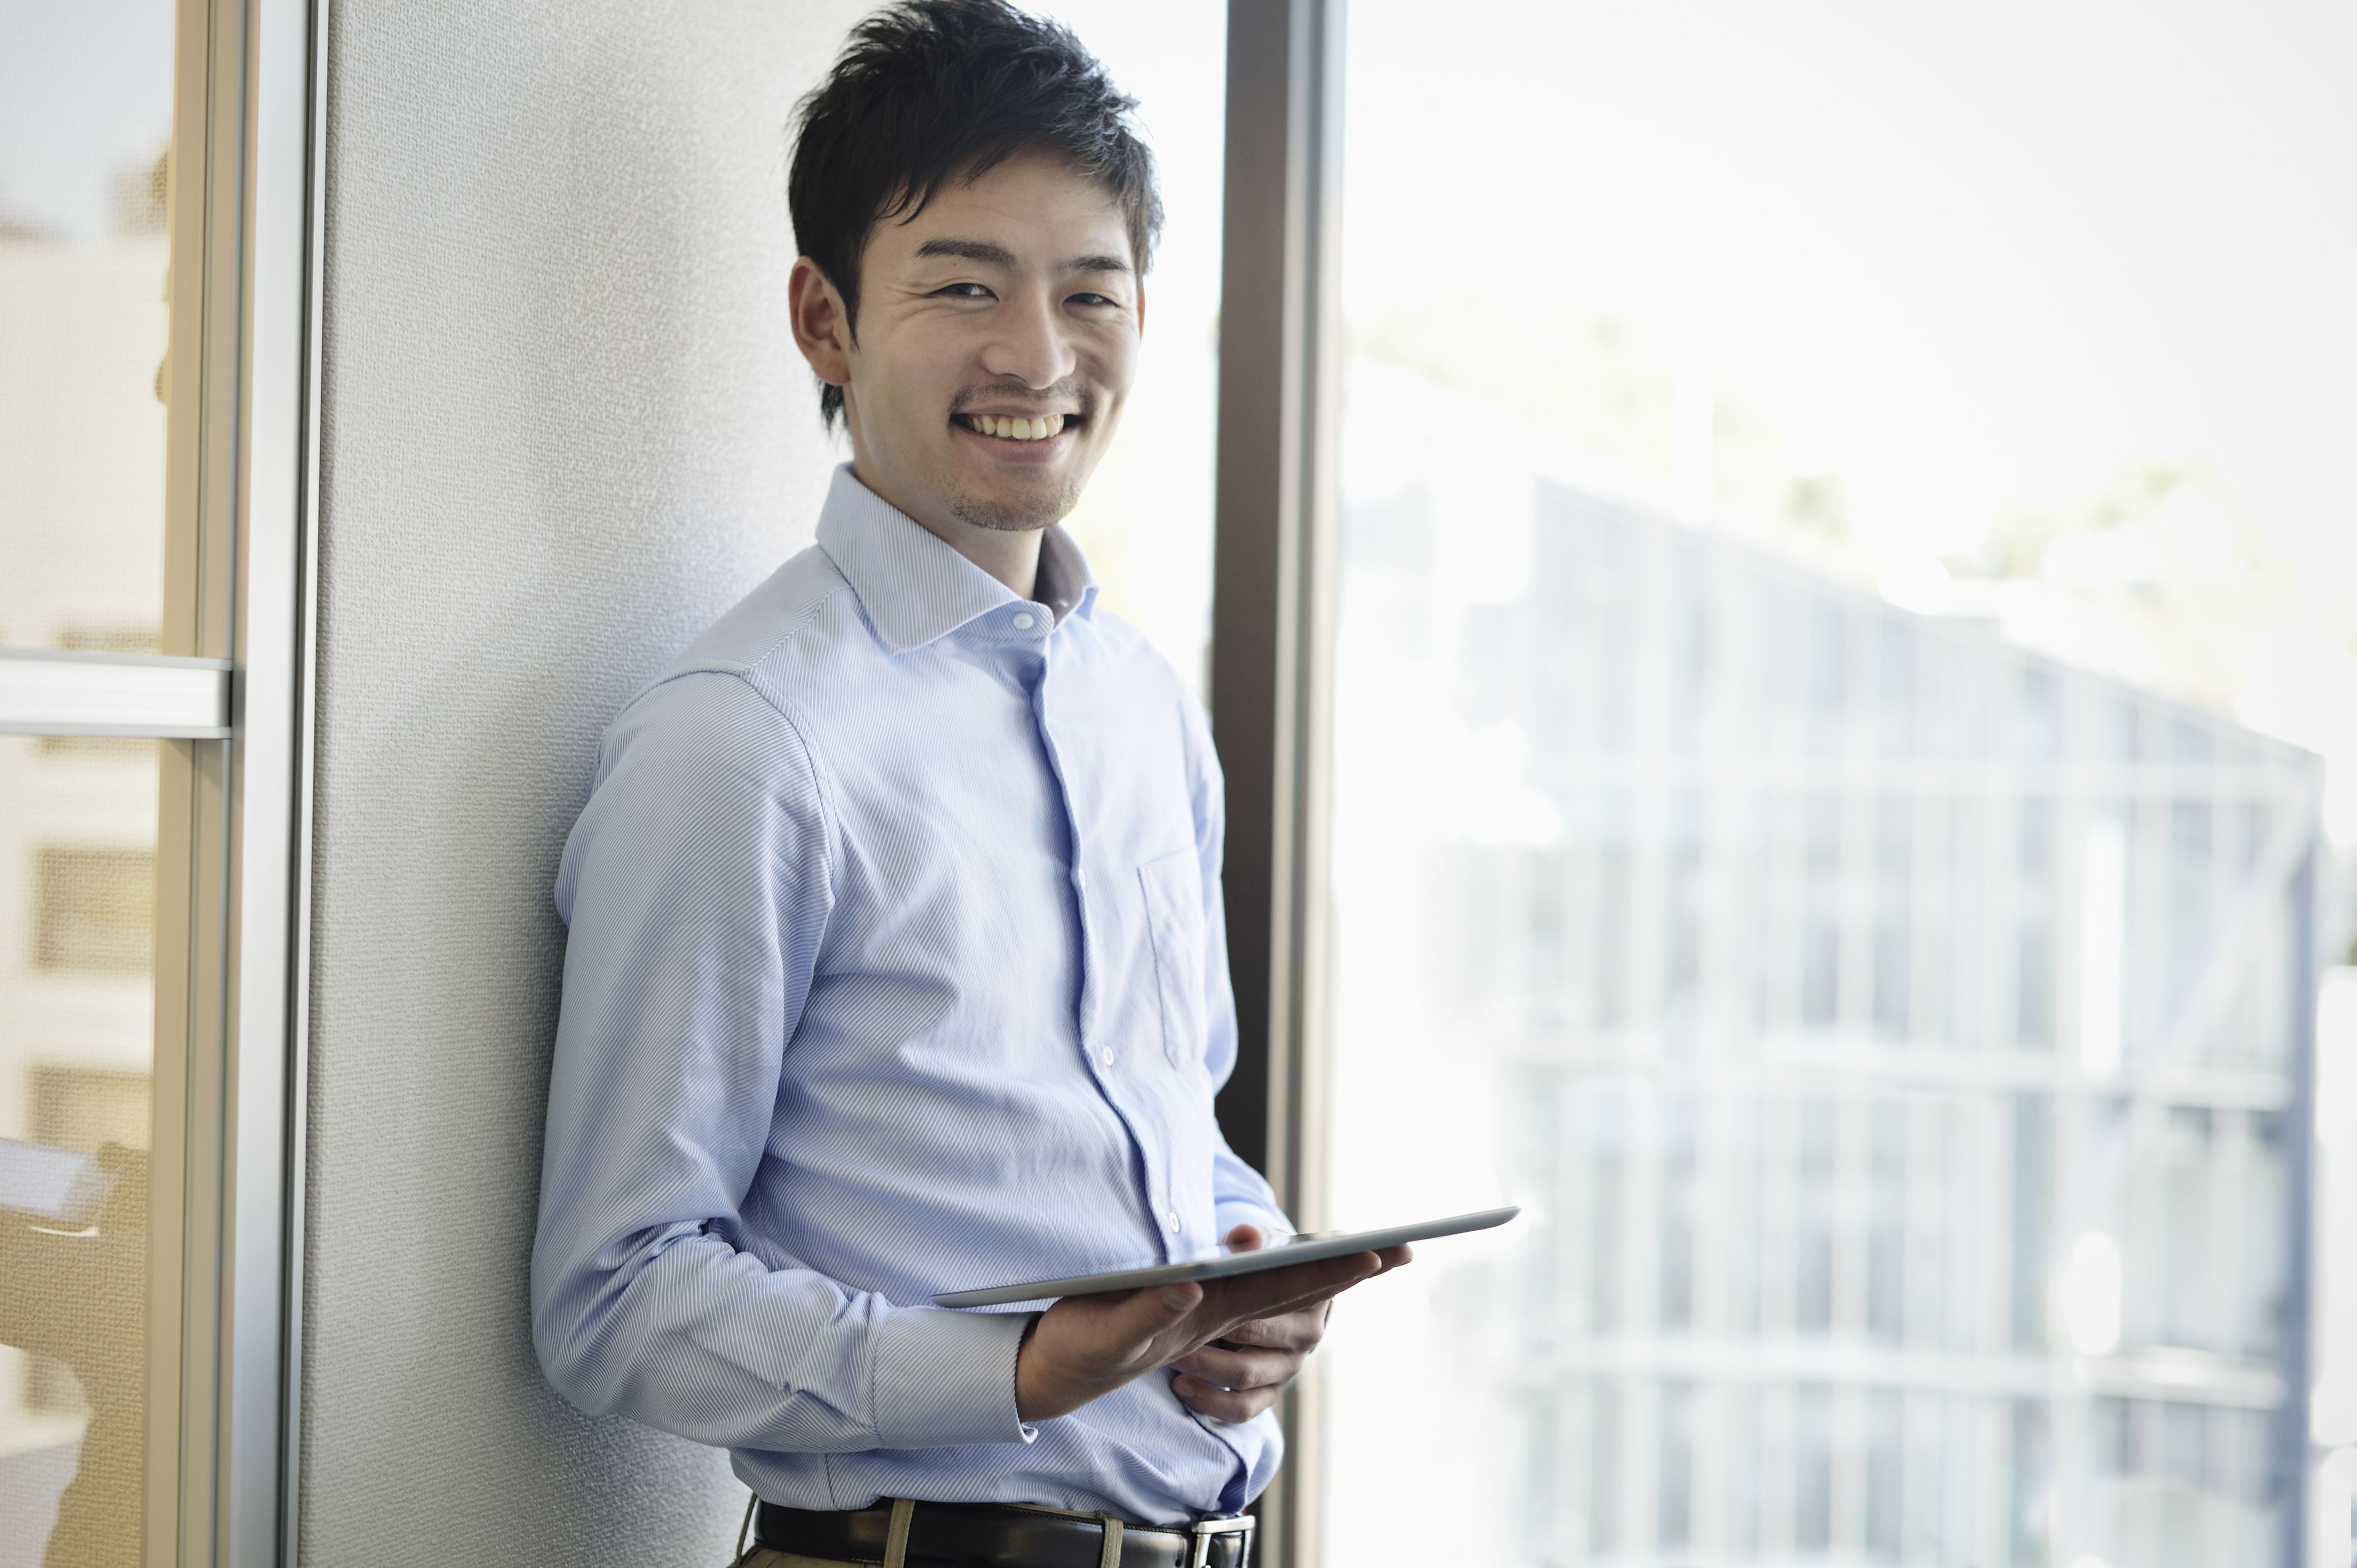 976b8e4d49 What to Wear to an Interview for a Summer Job